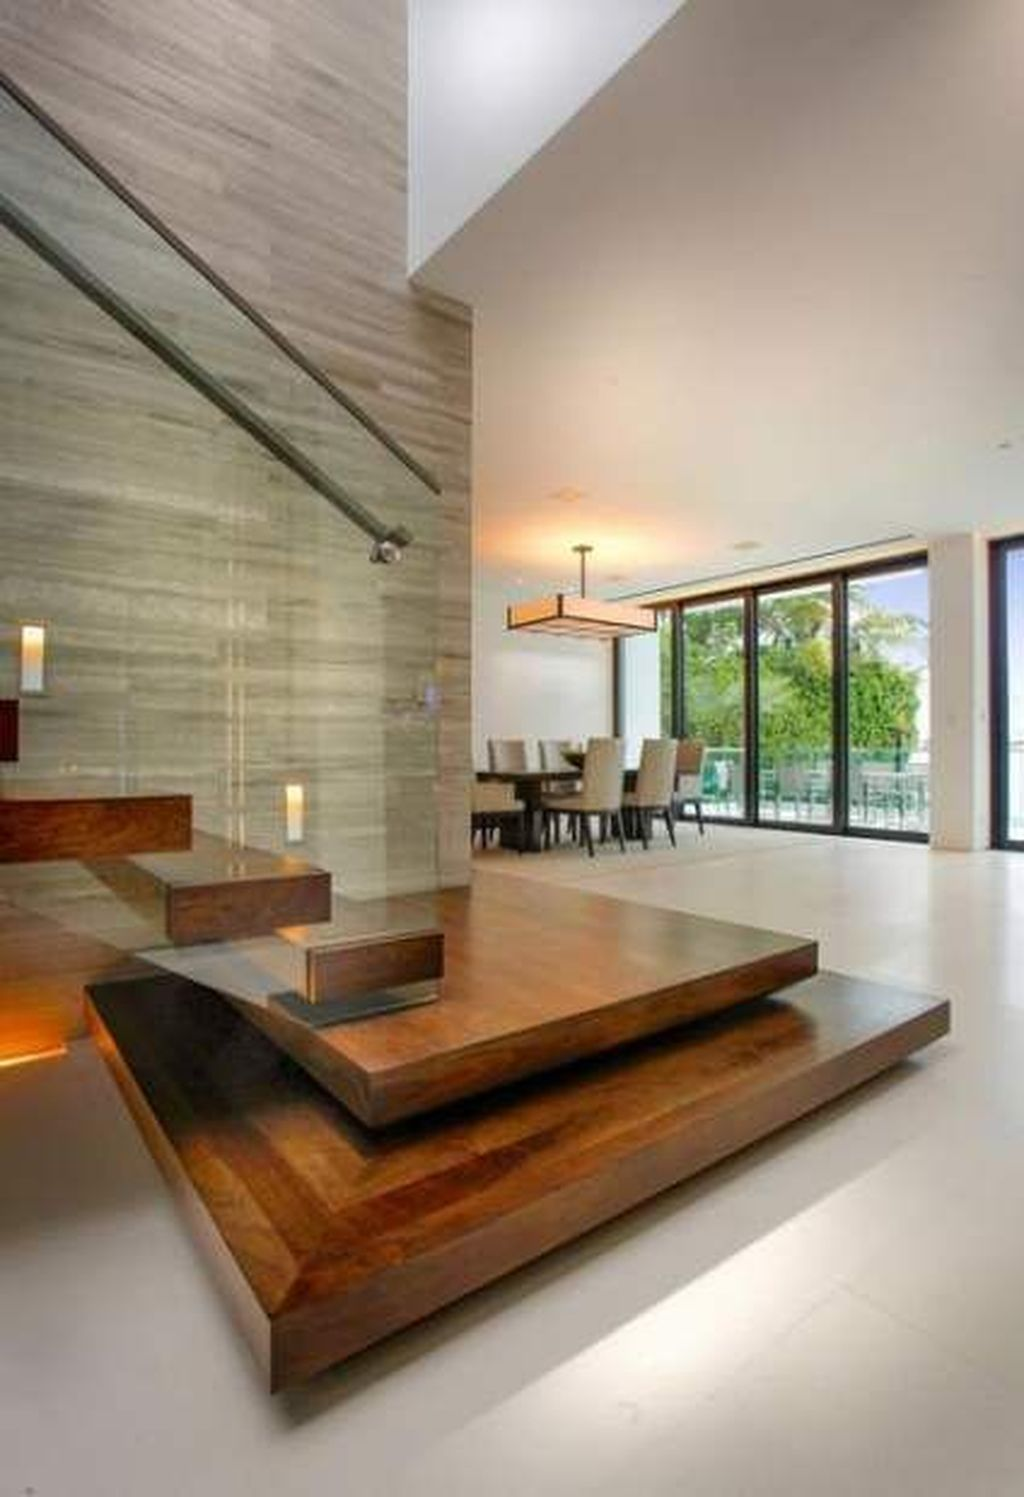 Awesome Modern Glass Railings Design Ideas For Stairs 05